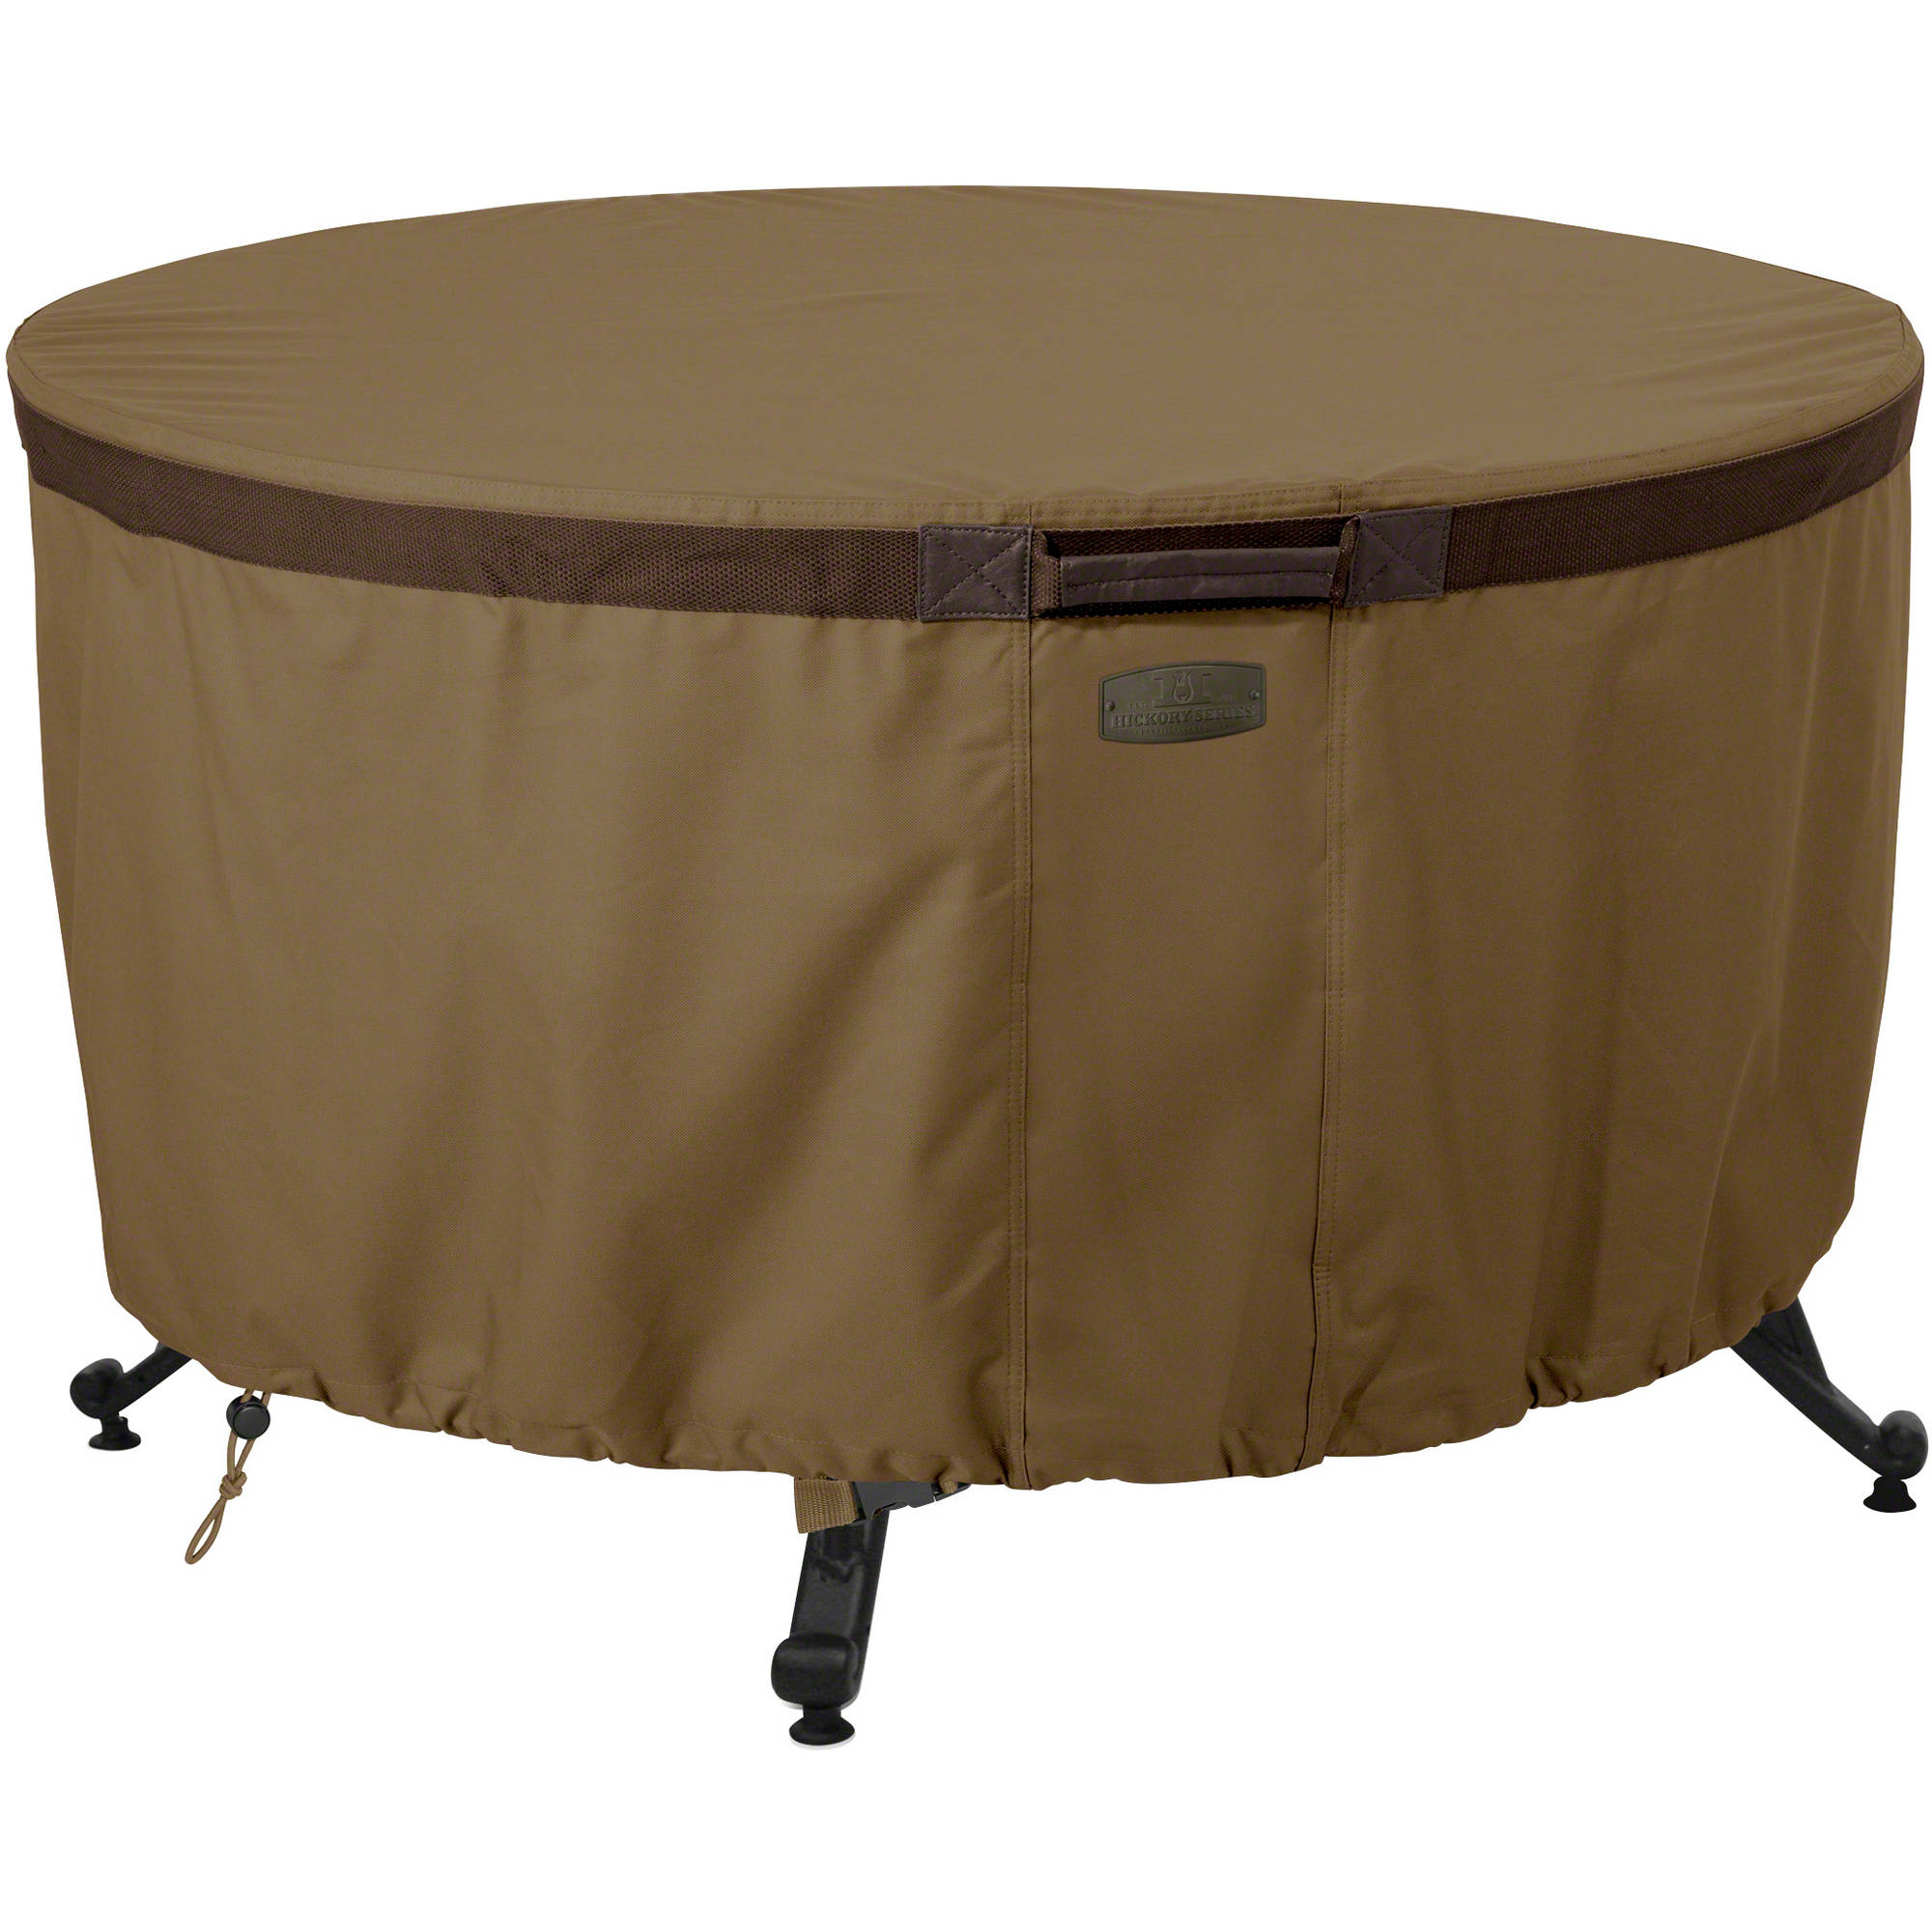 "Classic Accessories Hickory Round Fire Pit Table Cover - Water Resistant Outdoor Furniture Cover, 42""DIA x 22""H, Hickory"